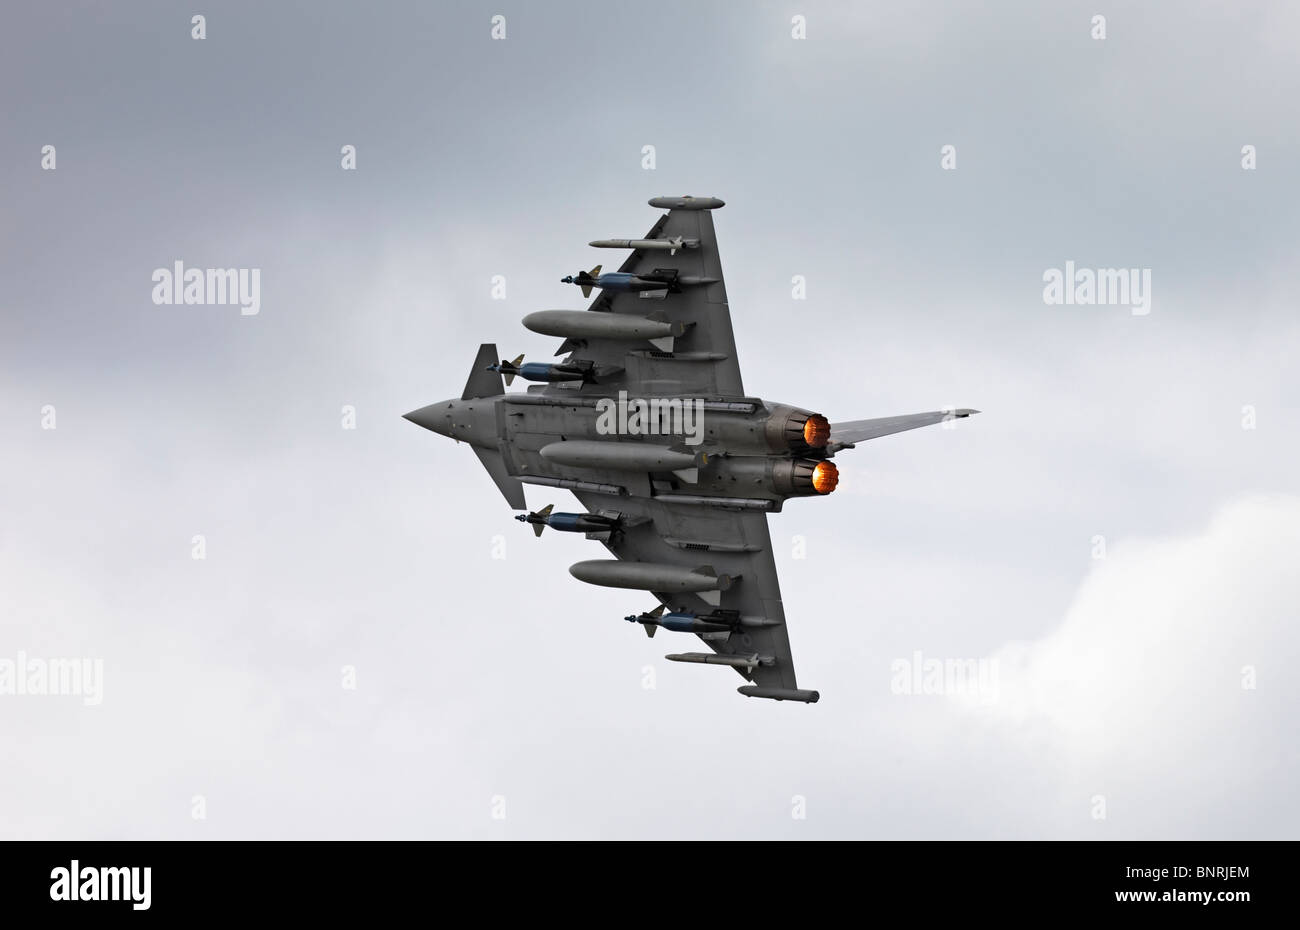 Farnborough BAE Systems Eurofighter Typhoon full weapons load re-heat - Stock Image